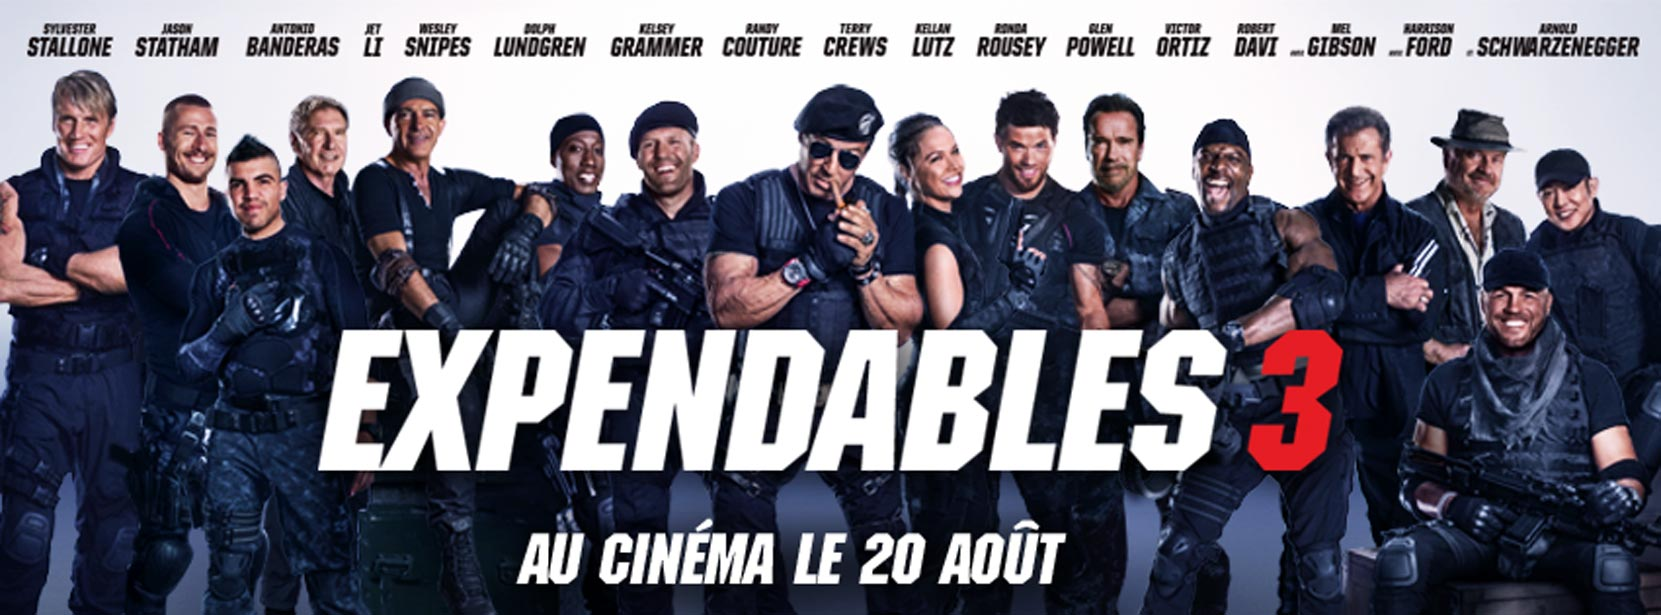 Expendables-3-banniere-gowith the blog